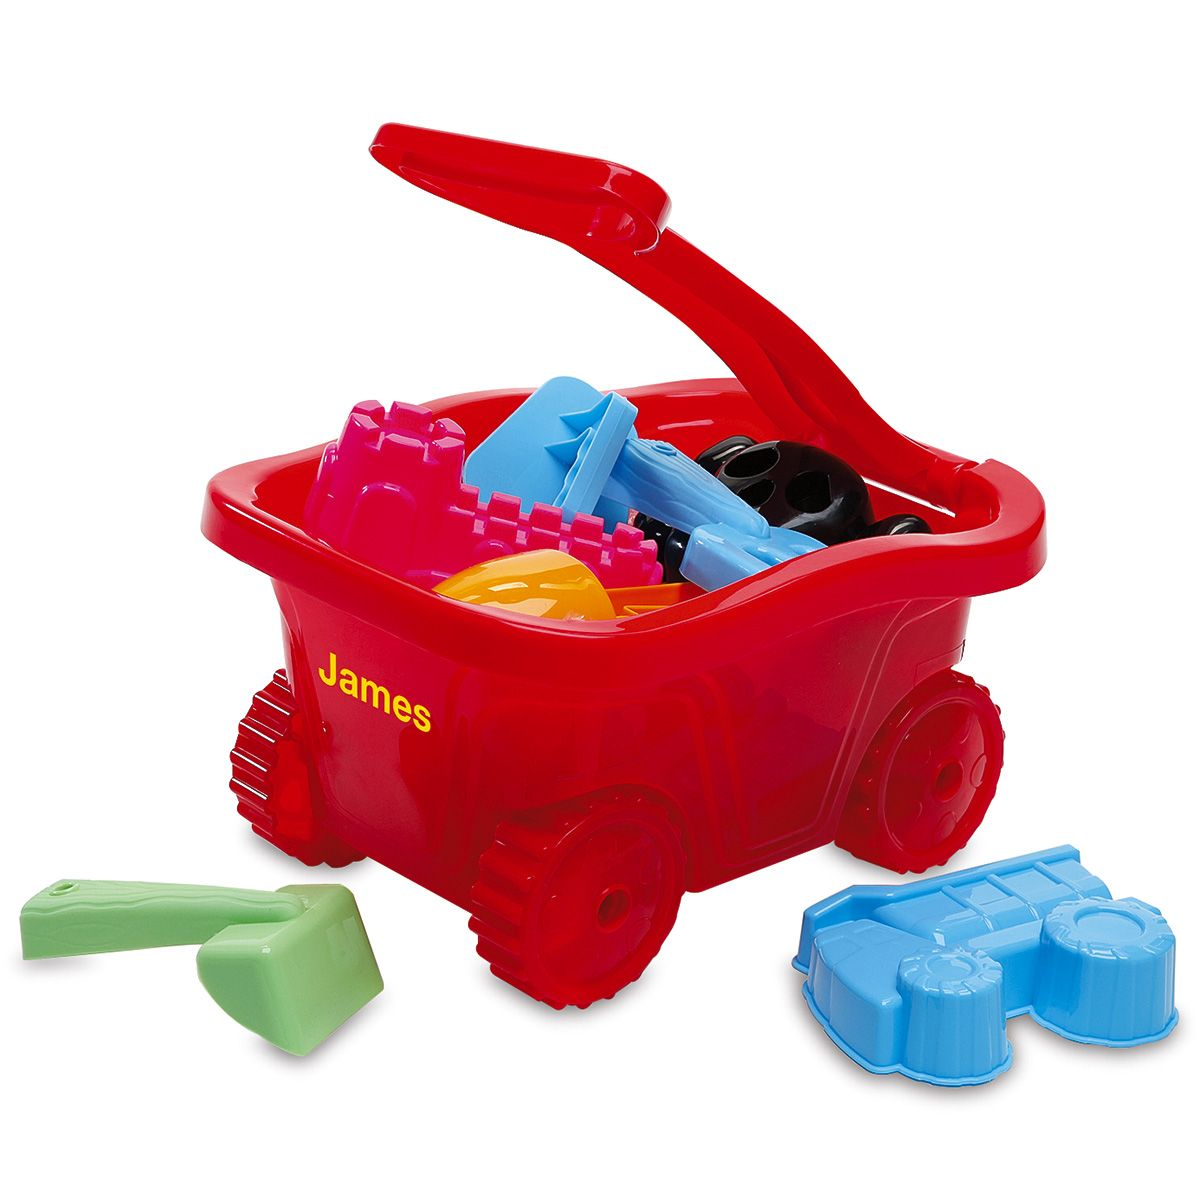 Personalized Red Plastic Wagon Set